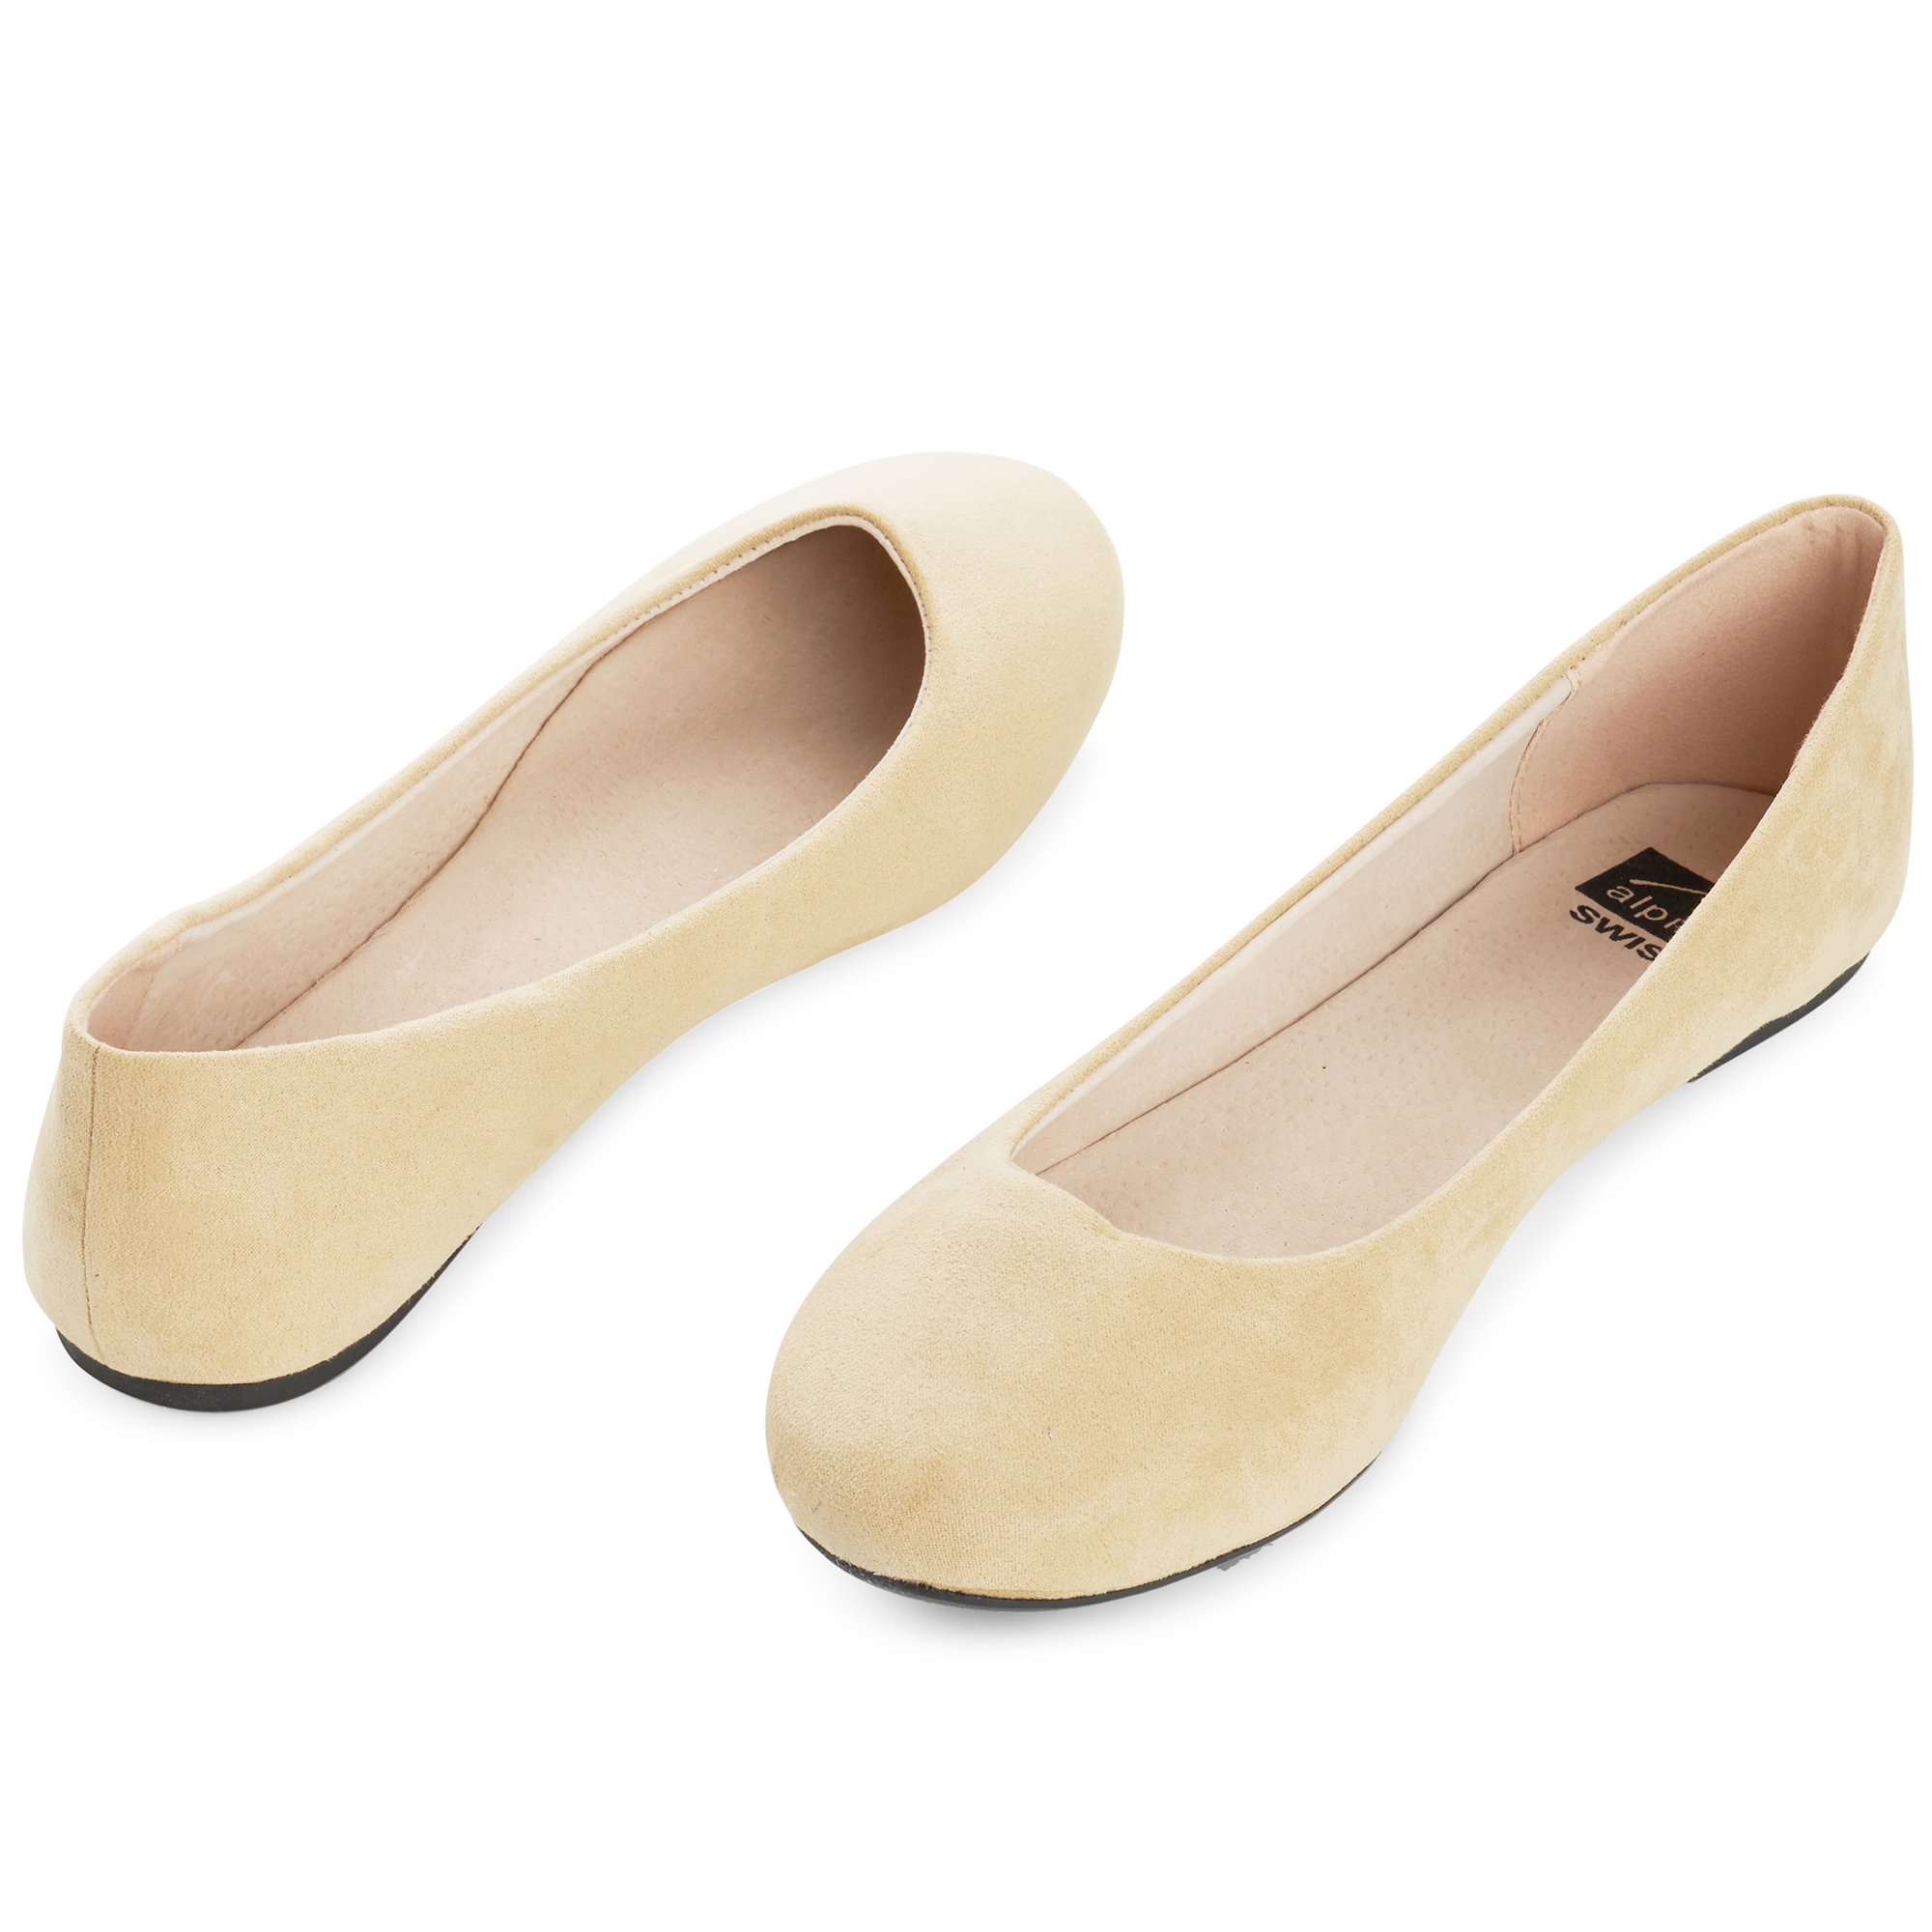 Alpine-Swiss-Pierina-Womens-Ballet-Flats-Leather-Lined-Classic-Slip-On-Shoes thumbnail 15